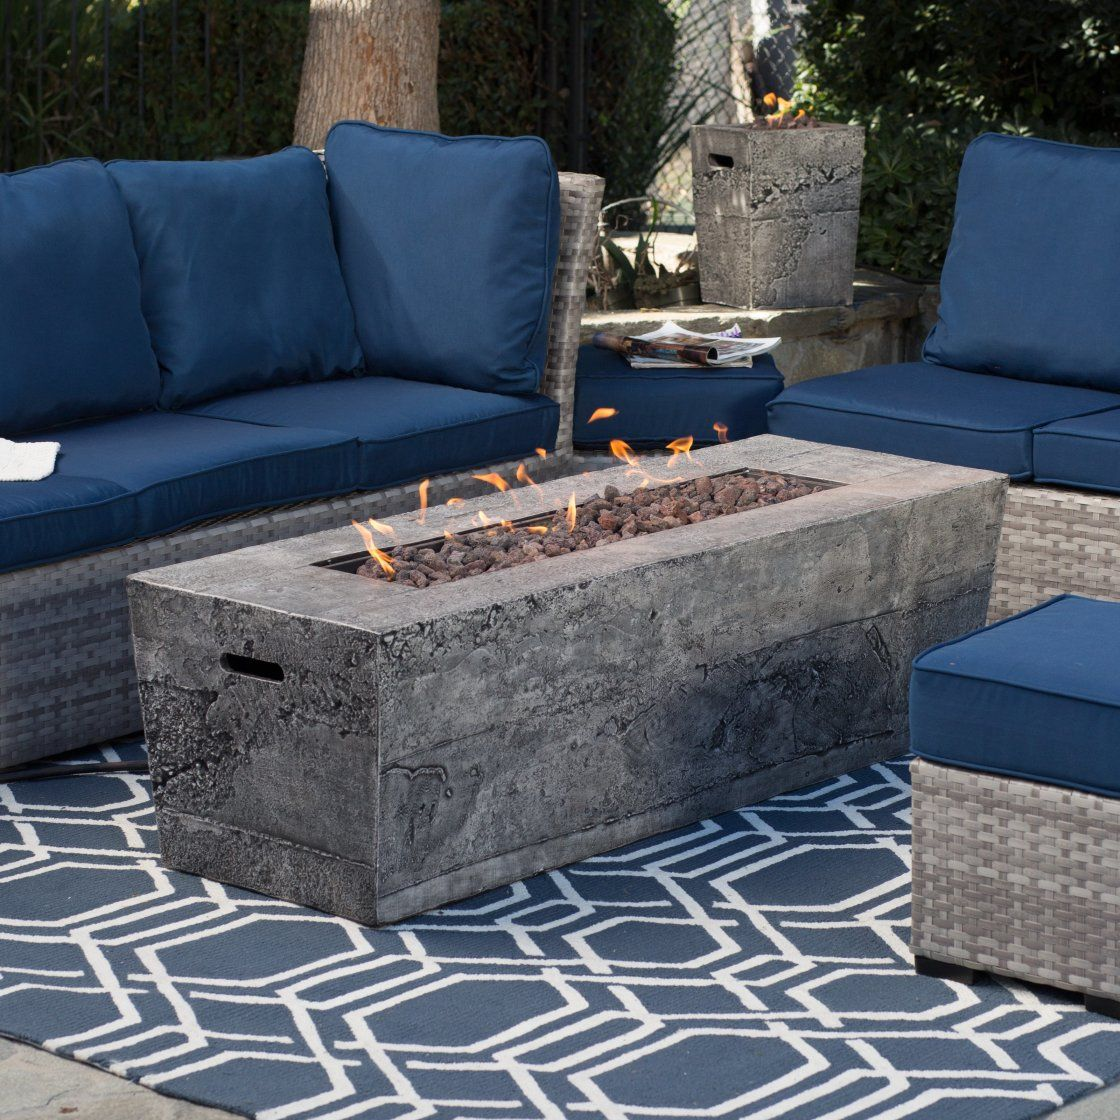 Admirable Furniture Ideas For Outdoor Cafe Plan Design Within Rectangular Shaped Grey Cement Fire Pit Table And C Gas Fire Pit Table Gas Firepit Fire Pit Table